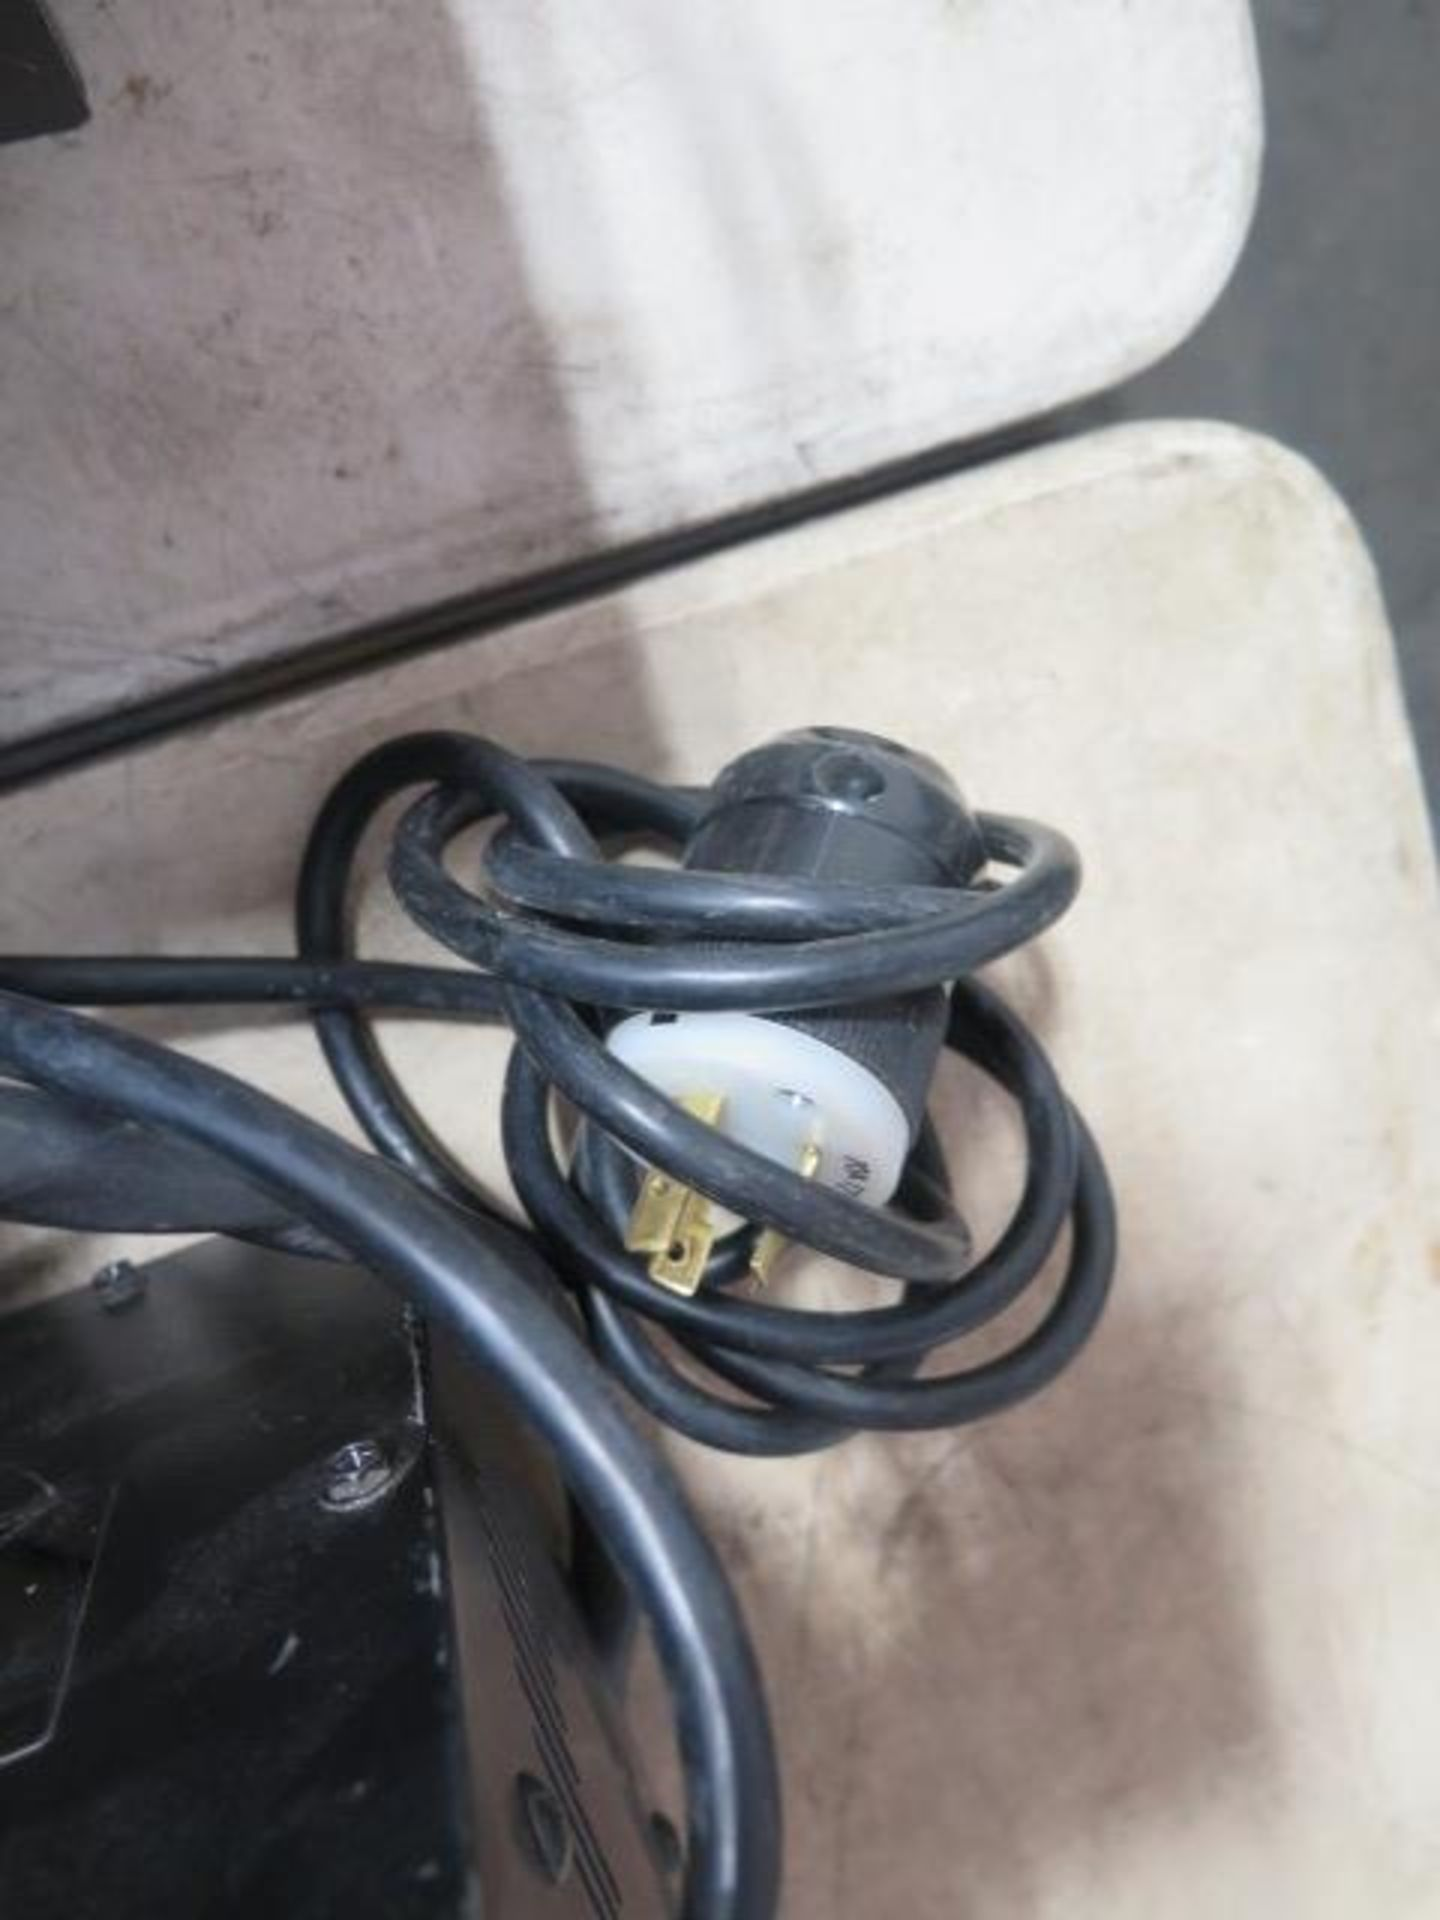 Thermal Dynamics AirCut 15 Plasma Cutting Power Source (SOLD AS-IS - NO WARRANTY) - Image 3 of 5